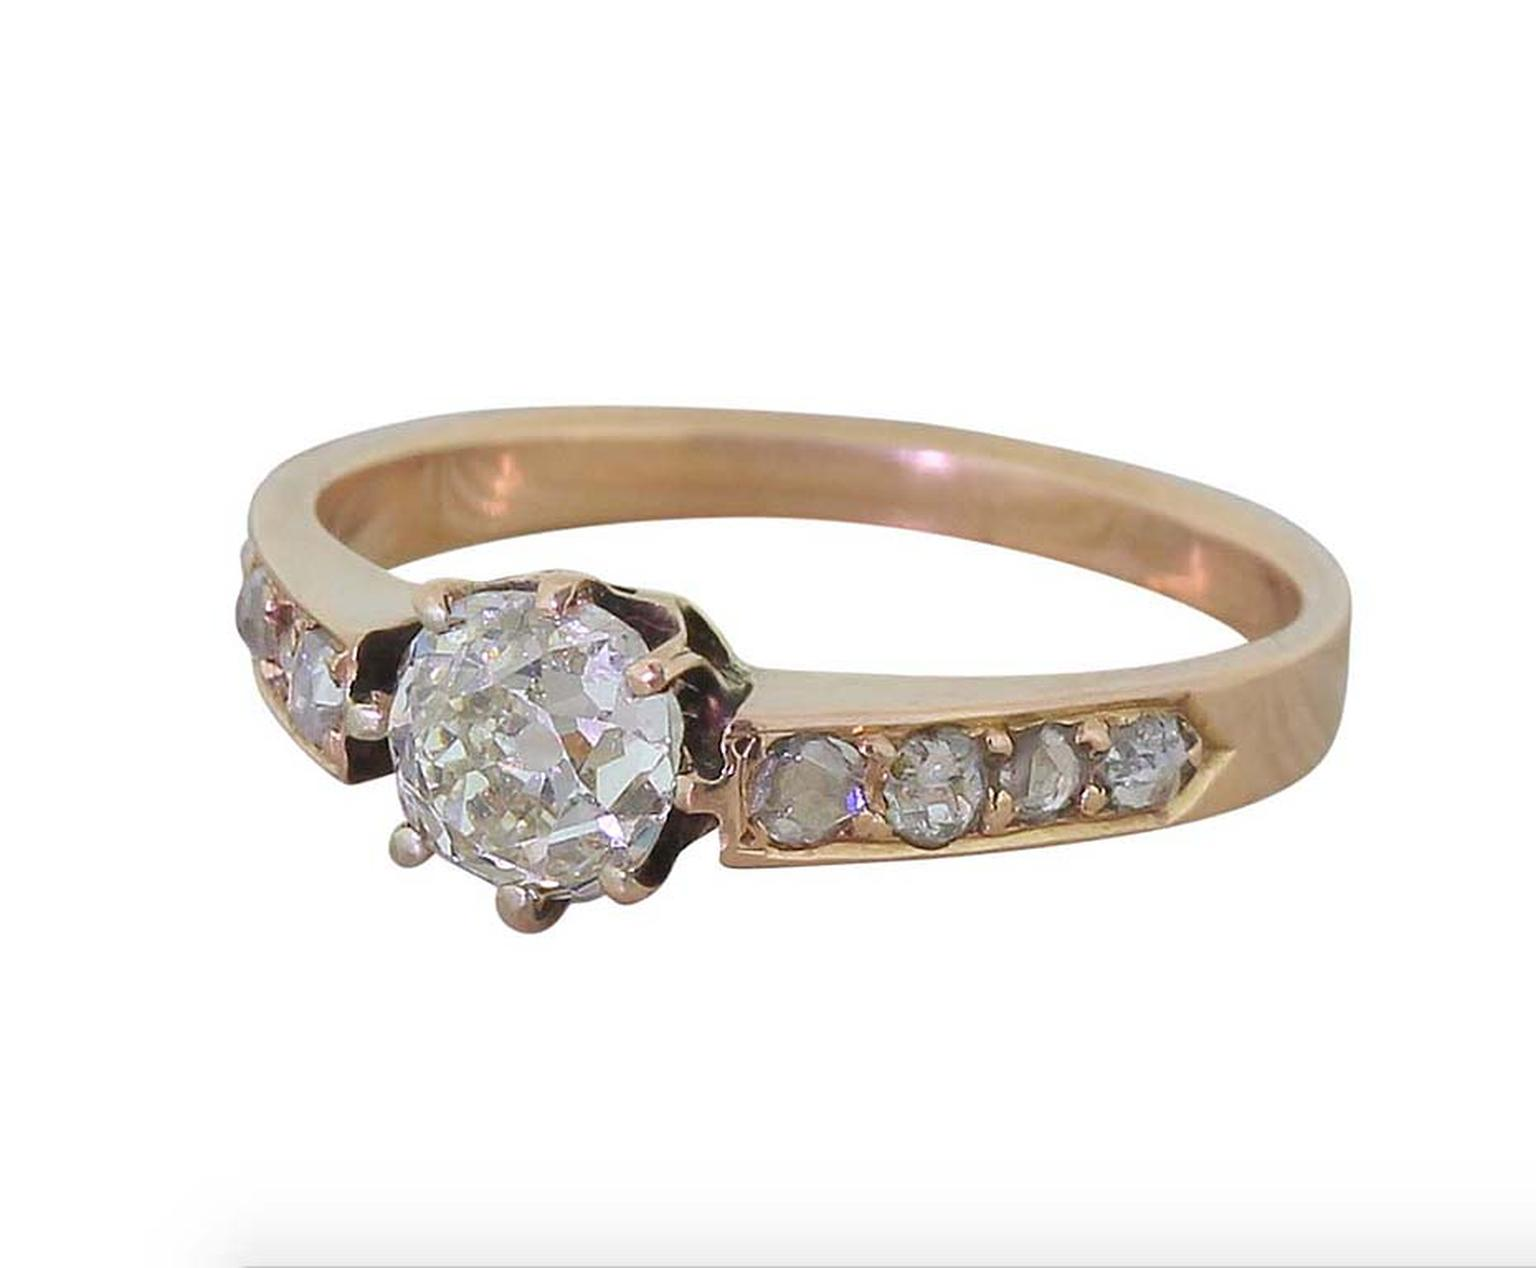 This Victorian engagement ring in rose gold is set with four rose-cut diamonds on either side of the central solitaire. Available at 1stdibs.com.